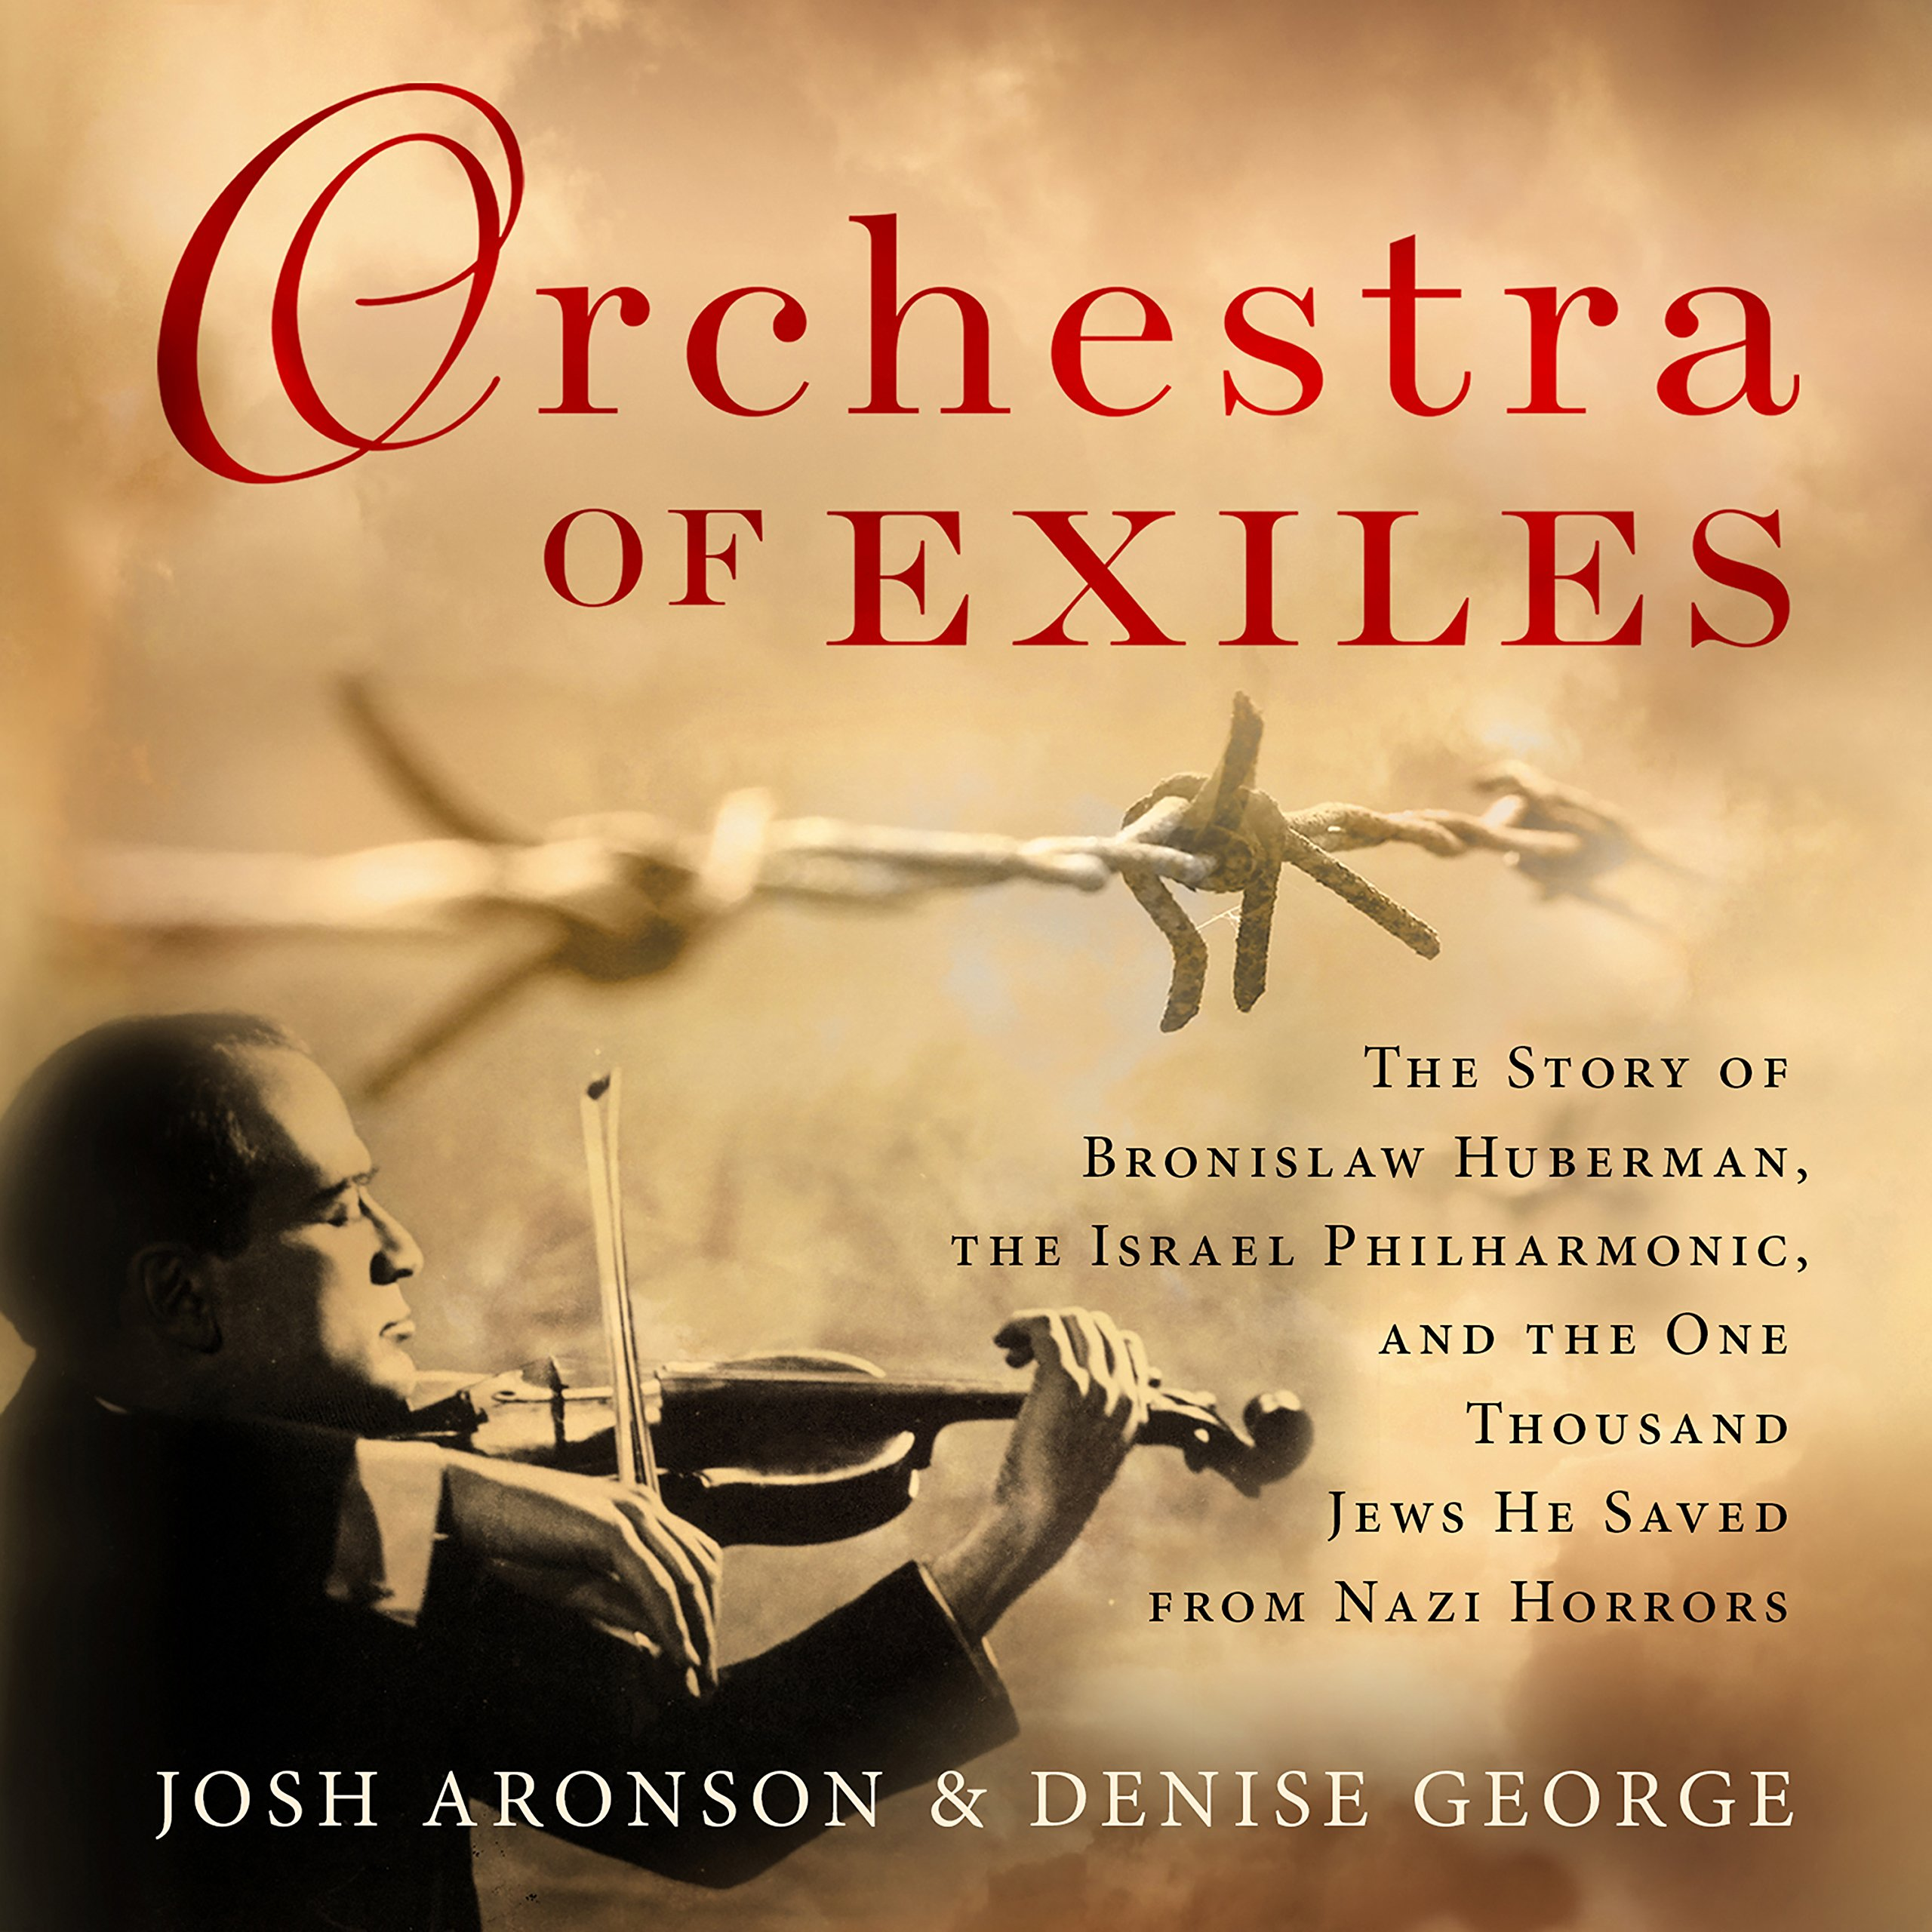 Orchestra of Exiles: The Story of Bronislaw Huberman, the Israel Philharmonic, and the One Thousand Jews He Saved from Nazi Horrors